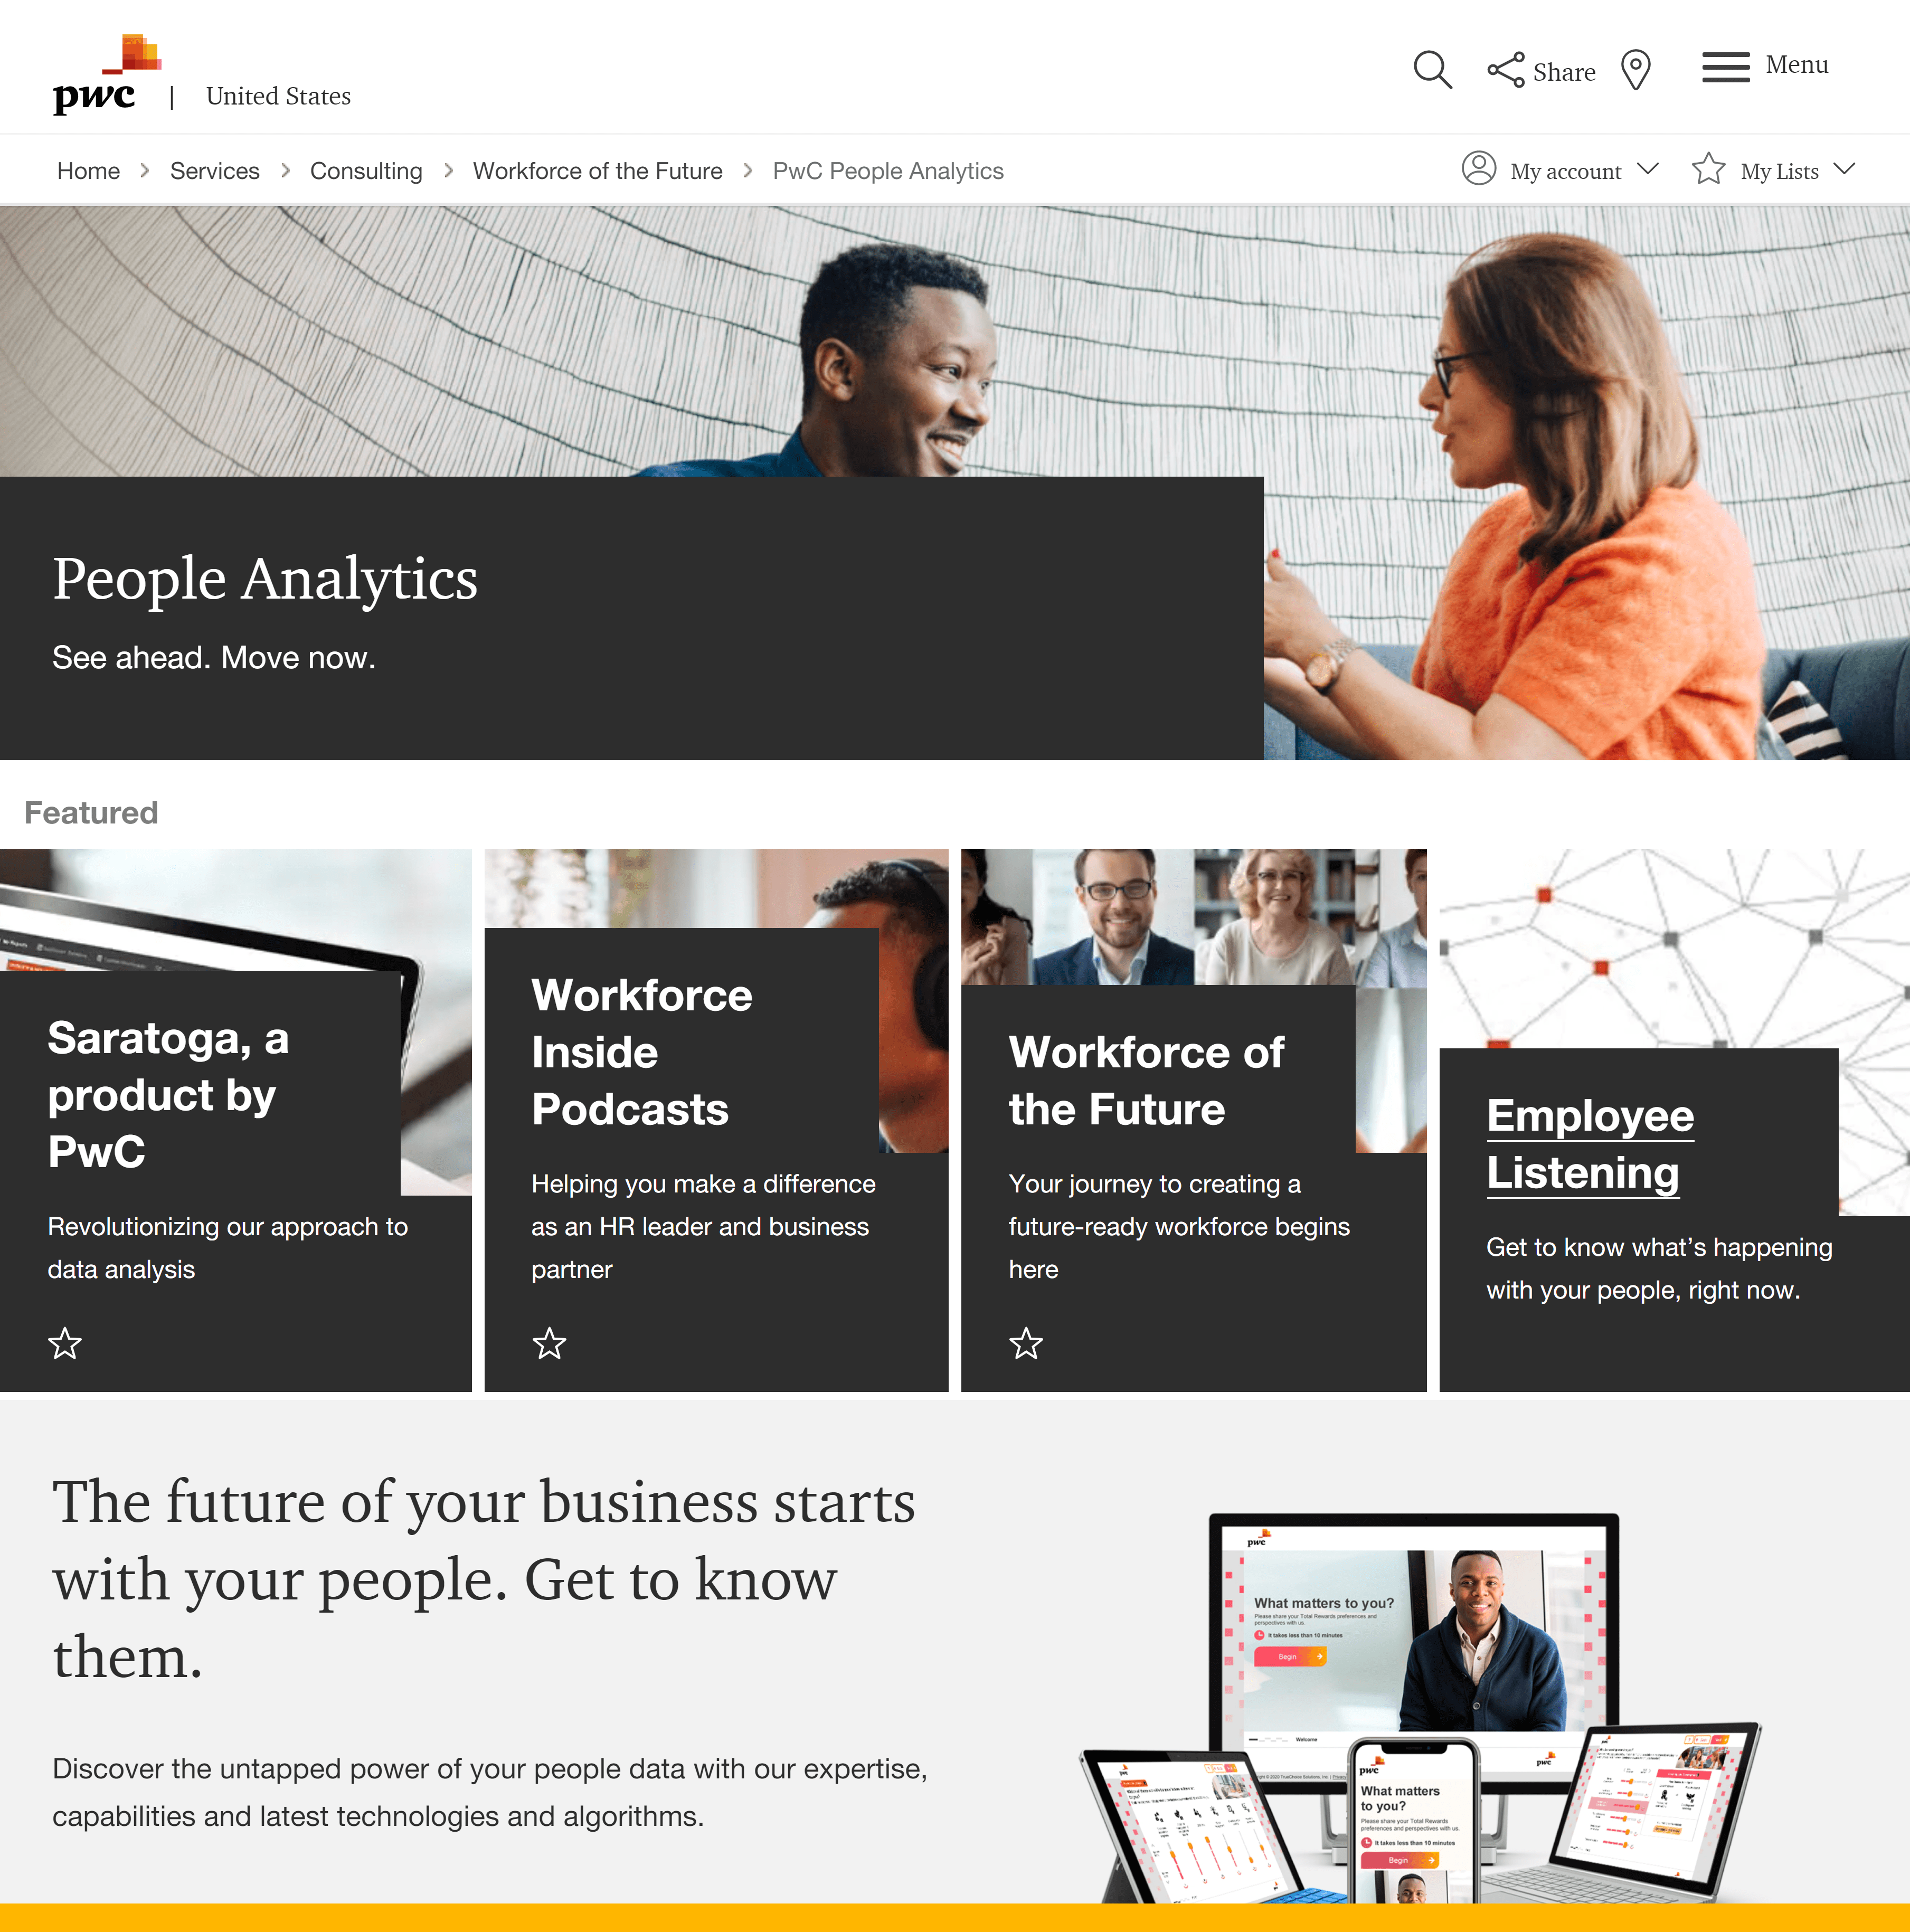 pwc-consulting-workforce-min.png